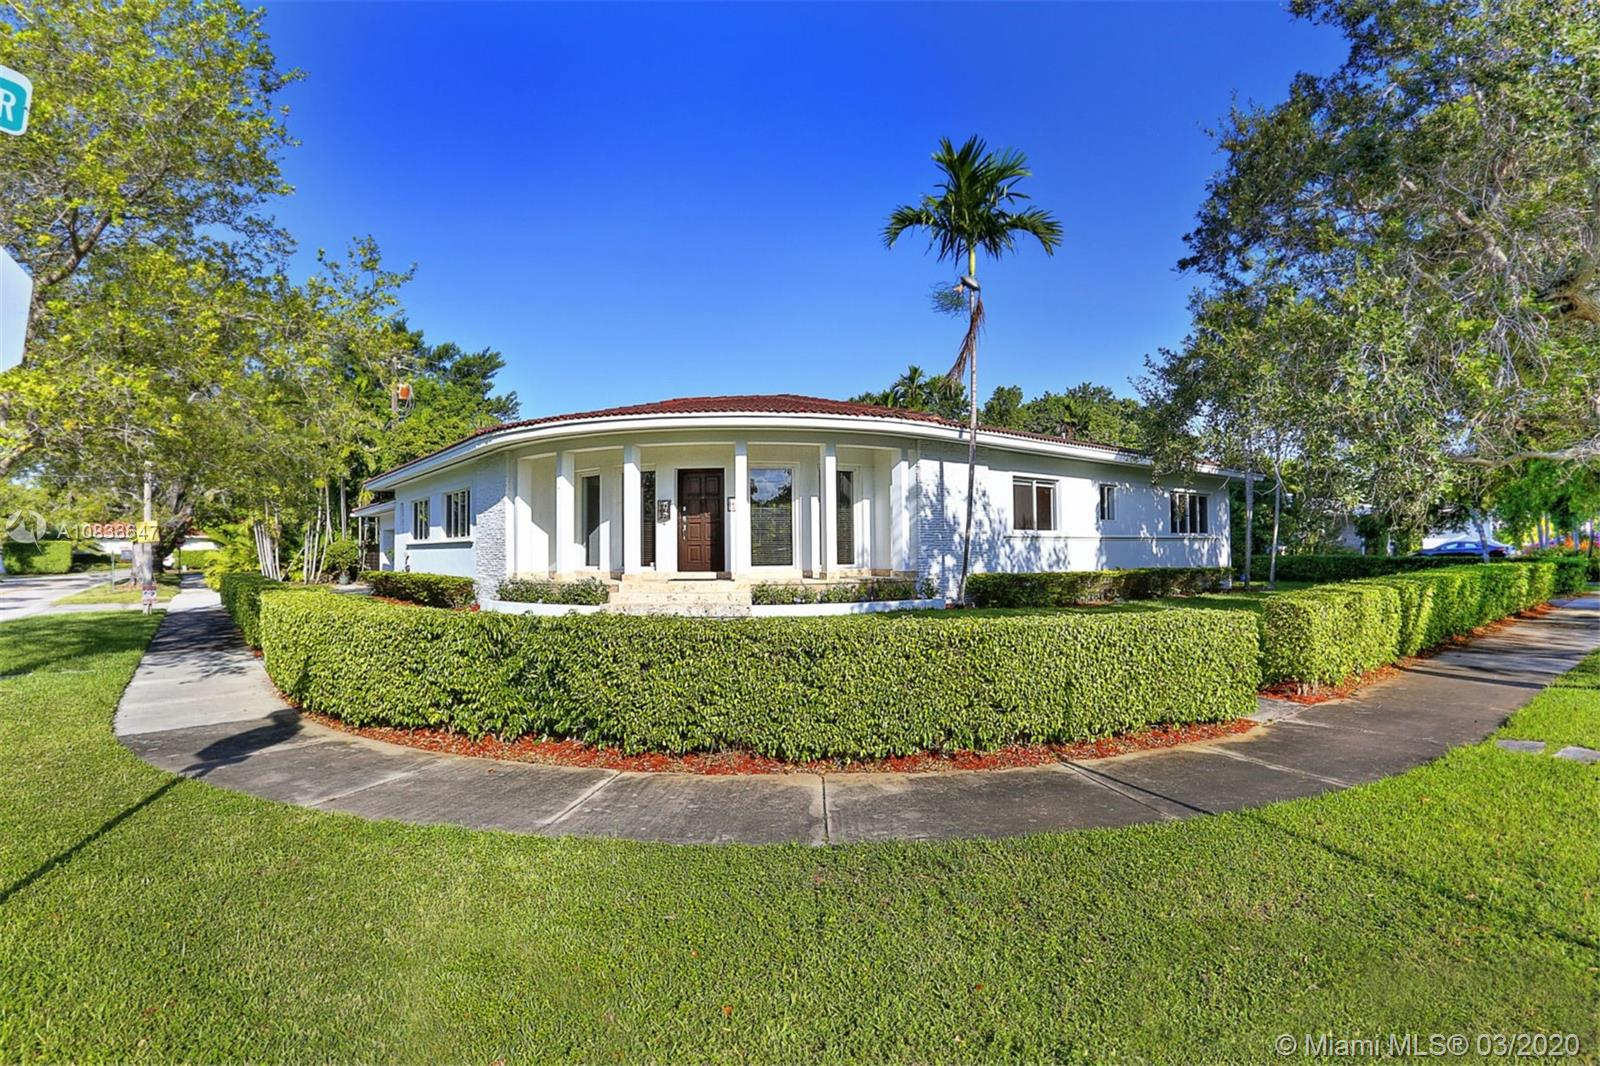 200 S Shore Dr, Miami, Florida 33133, 4 Bedrooms Bedrooms, 6 Rooms Rooms,5 BathroomsBathrooms,Residential,For Sale,200 S Shore Dr,A10836647